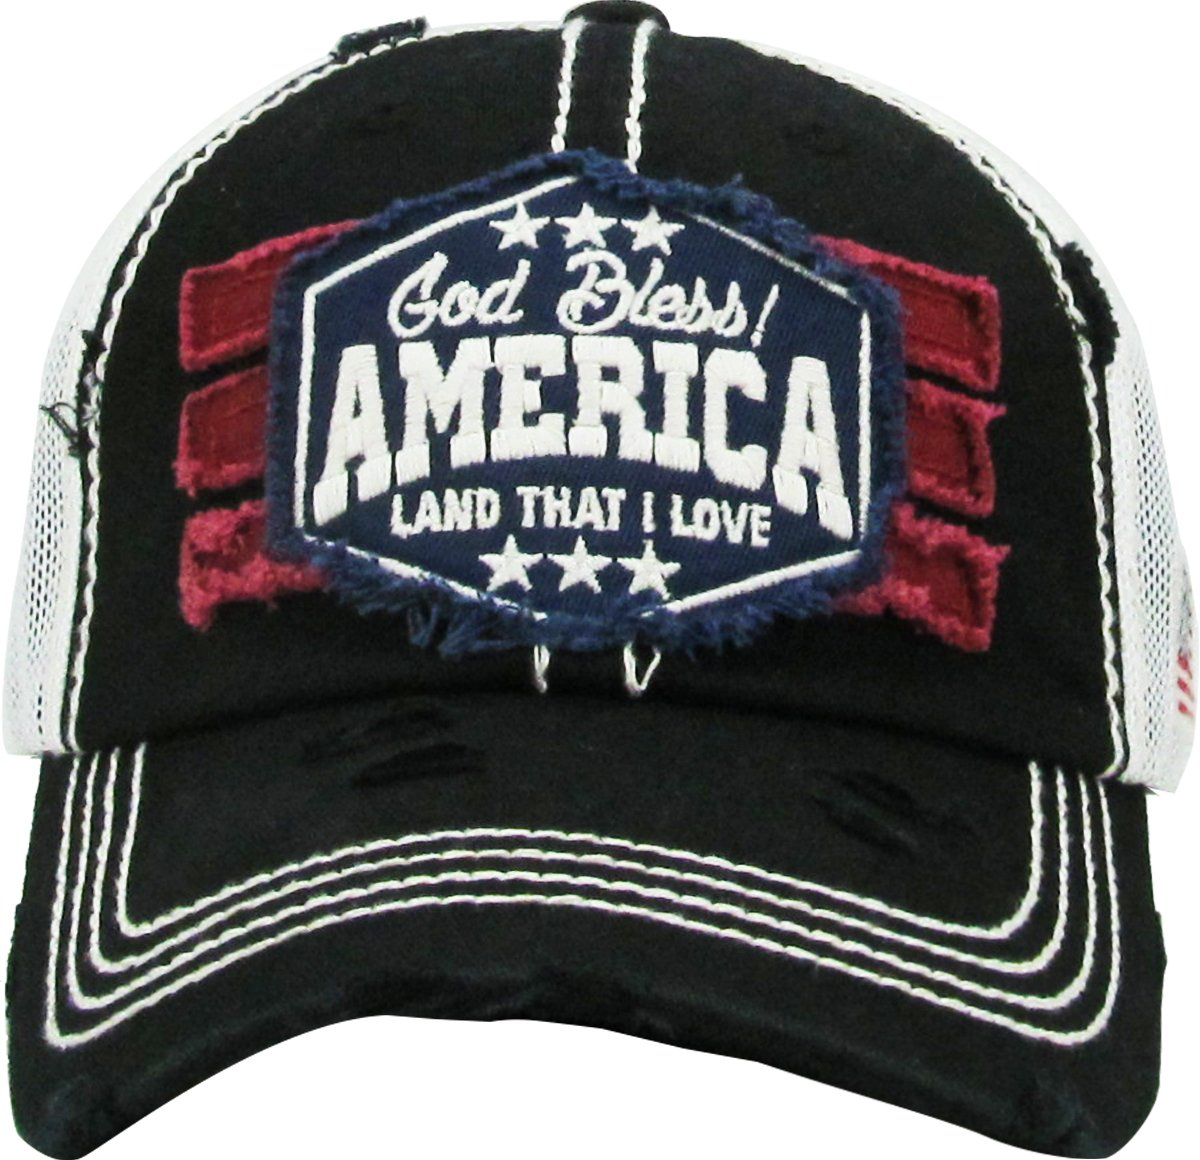 feeb2127b3e KBETHOS American Spirit Collection USA Distressed Vintage Baseball Cap Dad  Hat Adjustable Unconstructed KBVT-1066 BLK